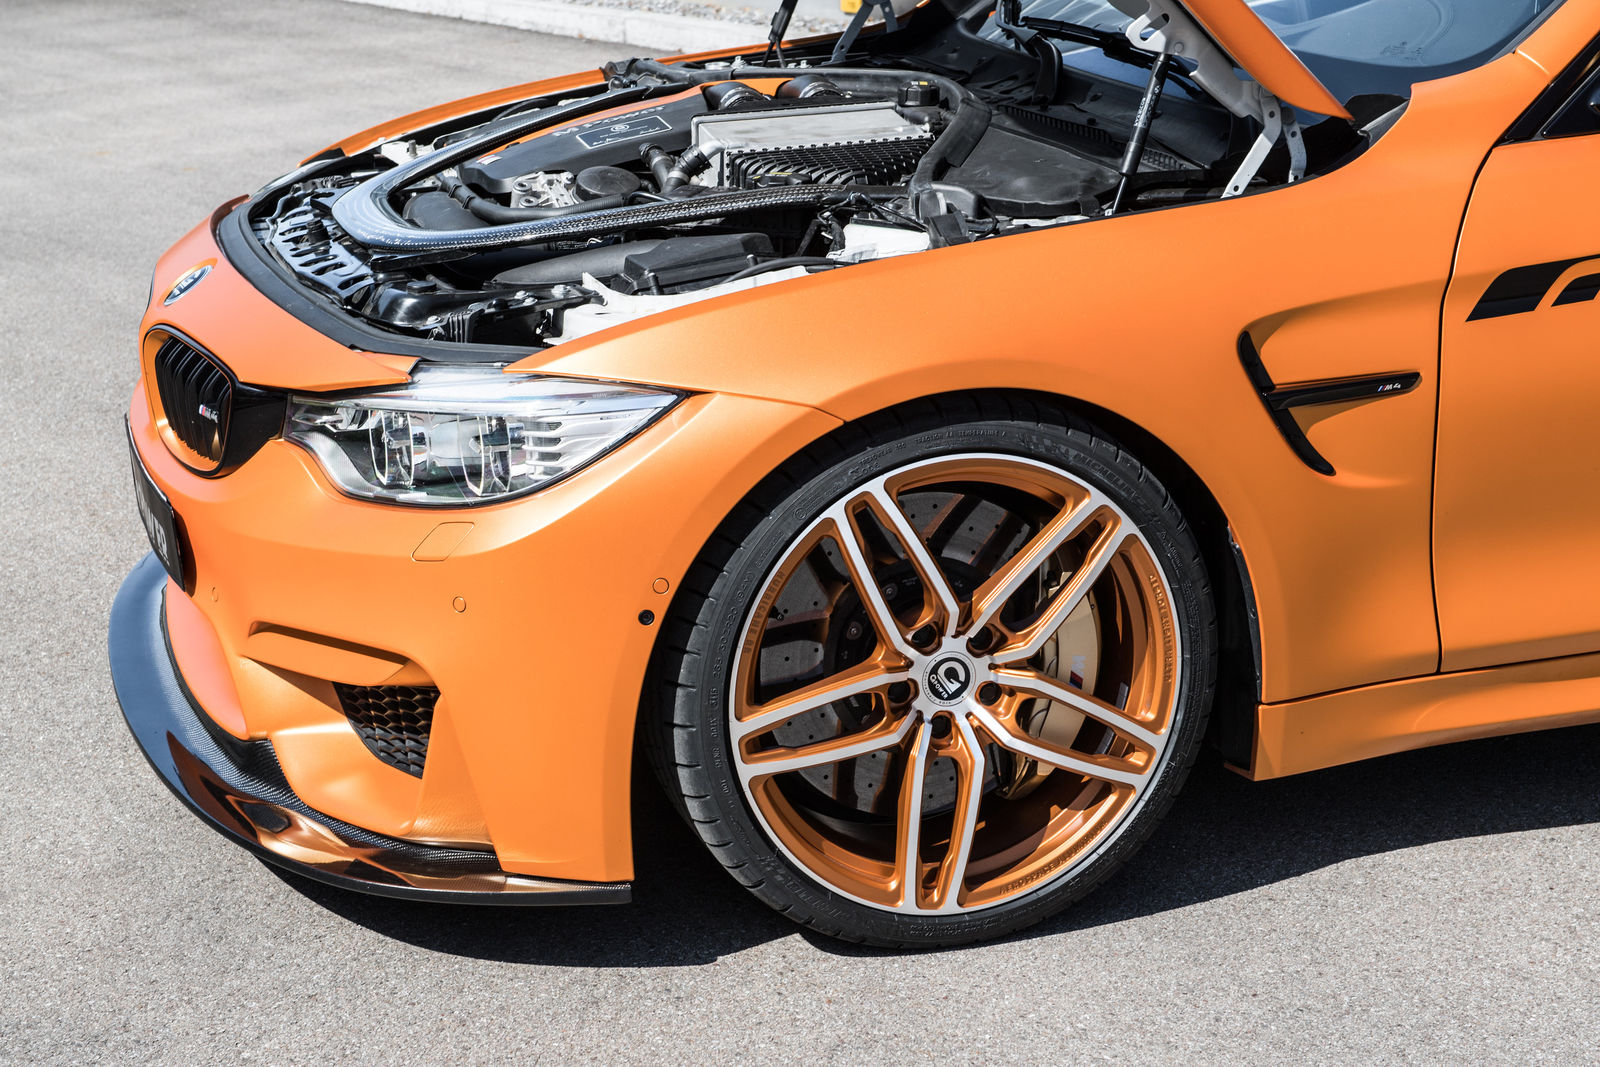 BMW M4 670ps by G-Power (4)